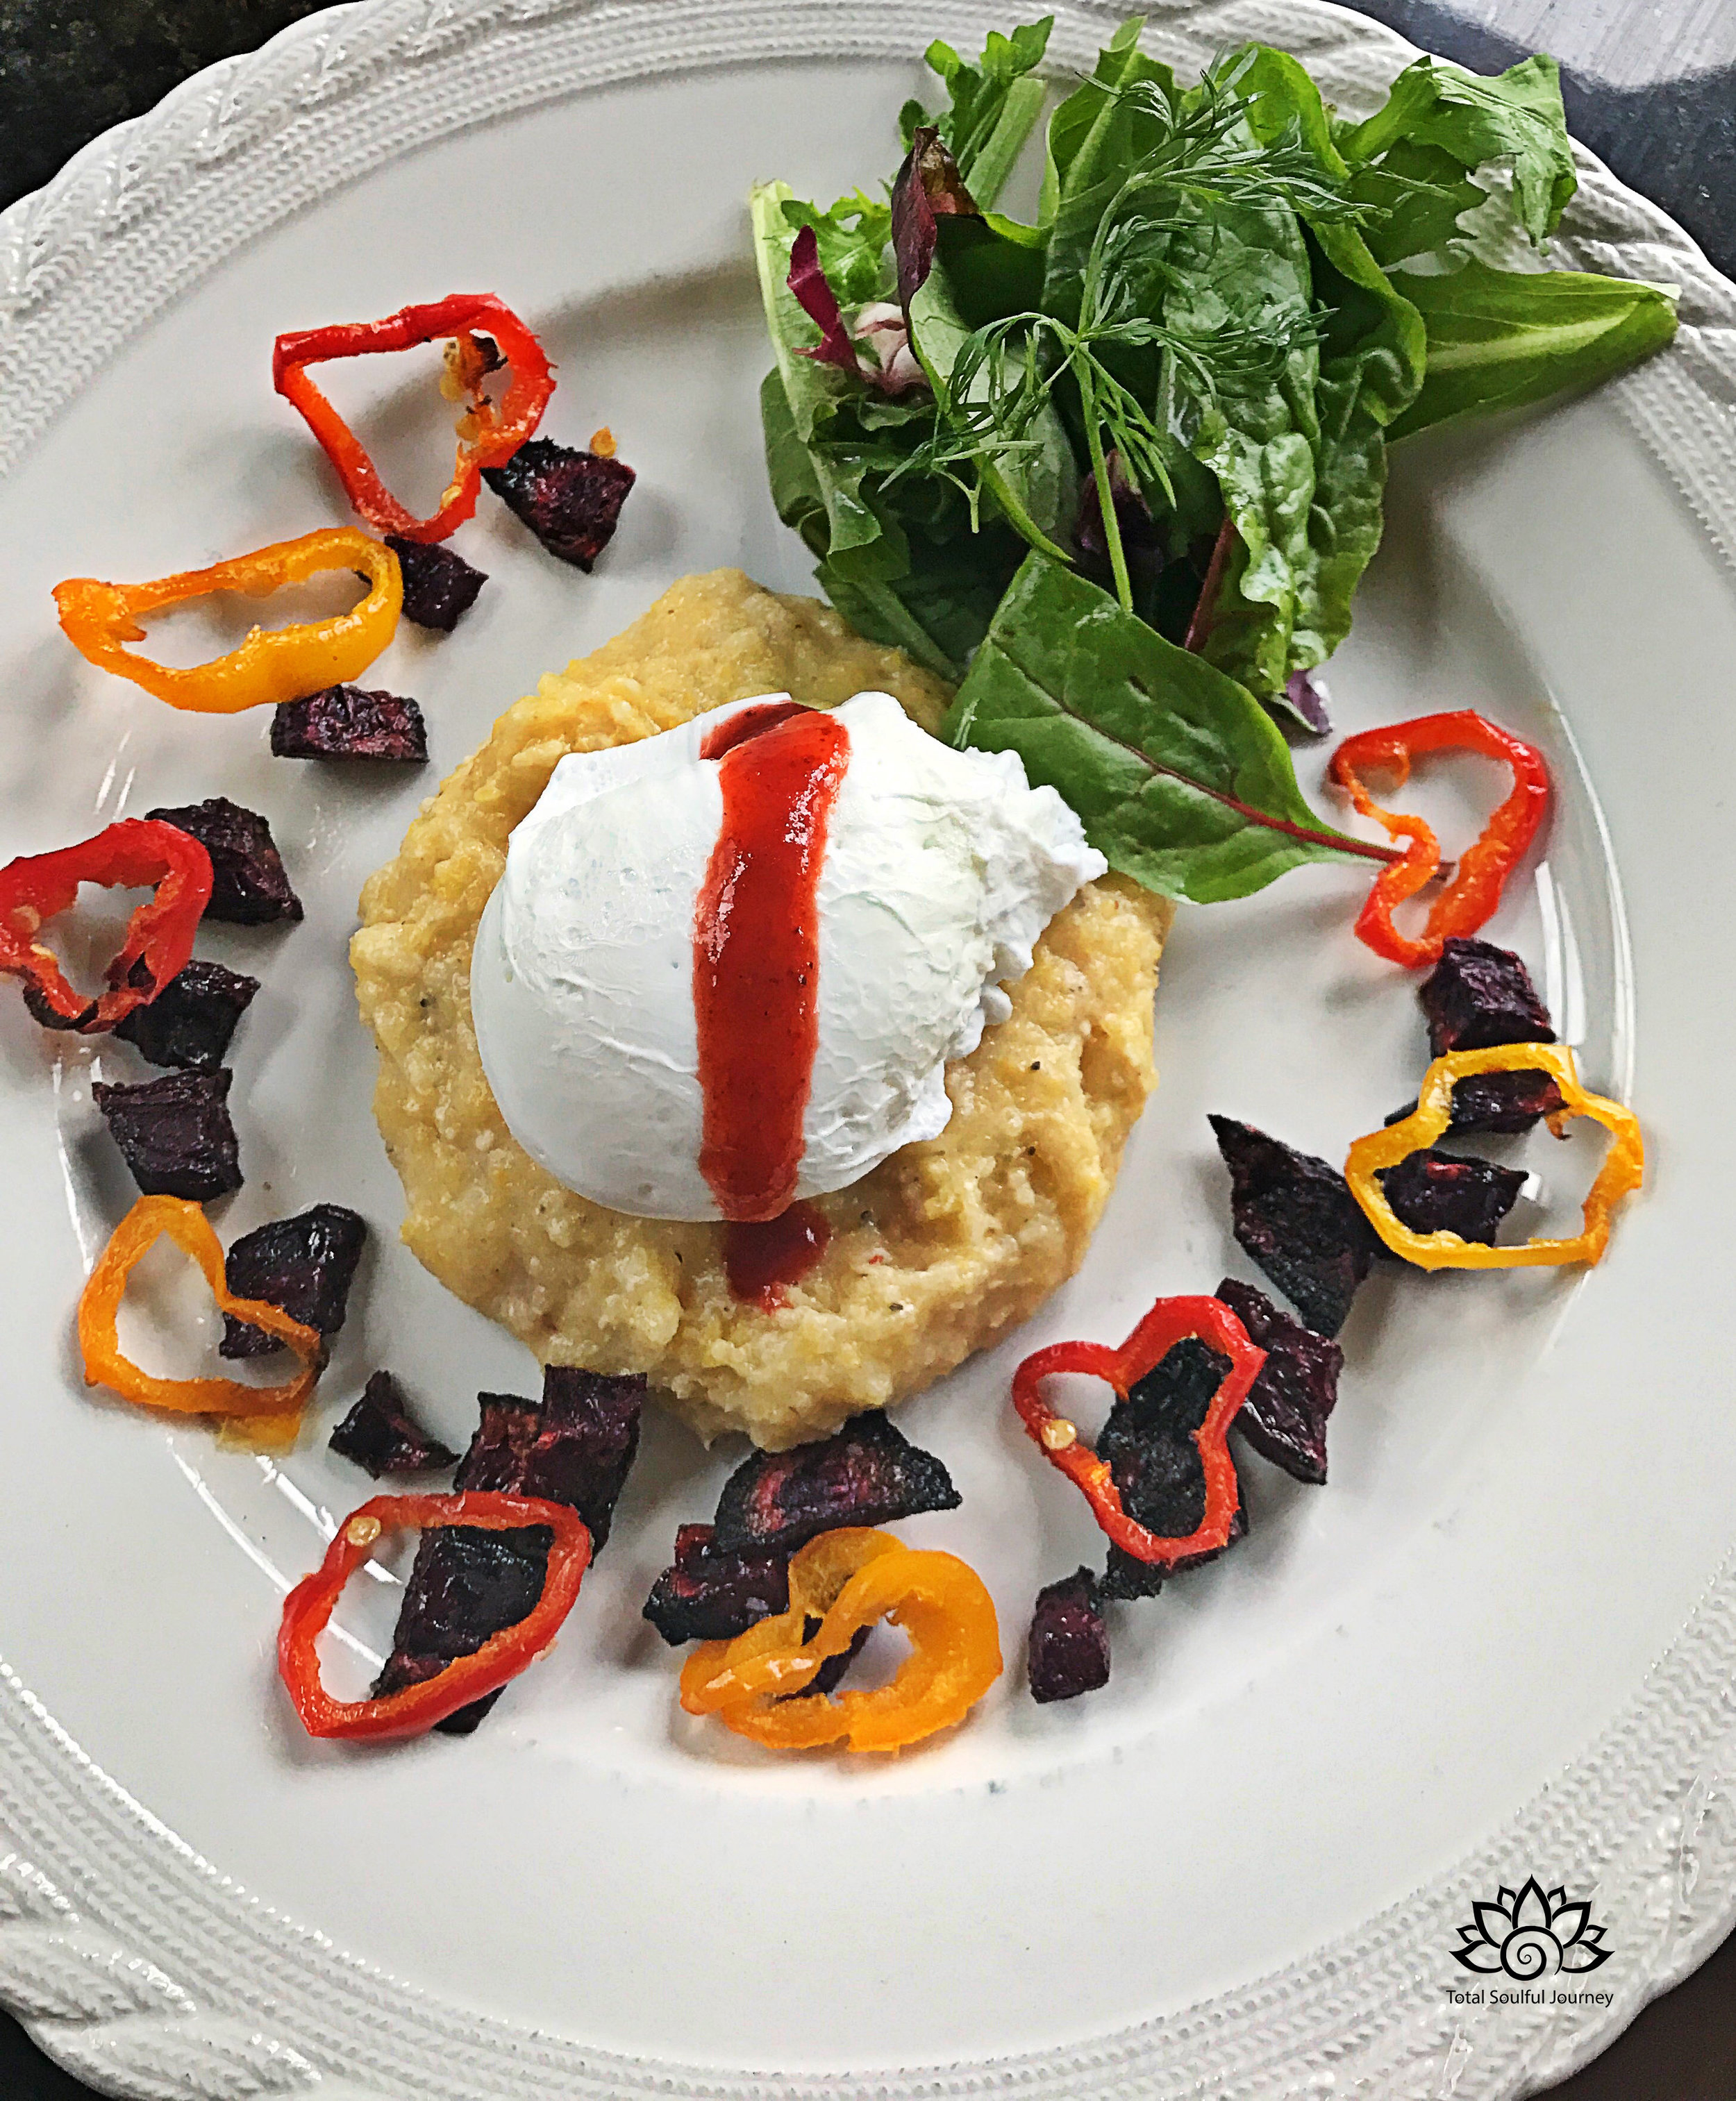 I love making brunch! This is a poached egg on polenta with crispy roasted beets, roasted peppers and a light spring salad on the side, which is delish when the yolk breaks! A drizzle of hot sauce tops it perfectly!